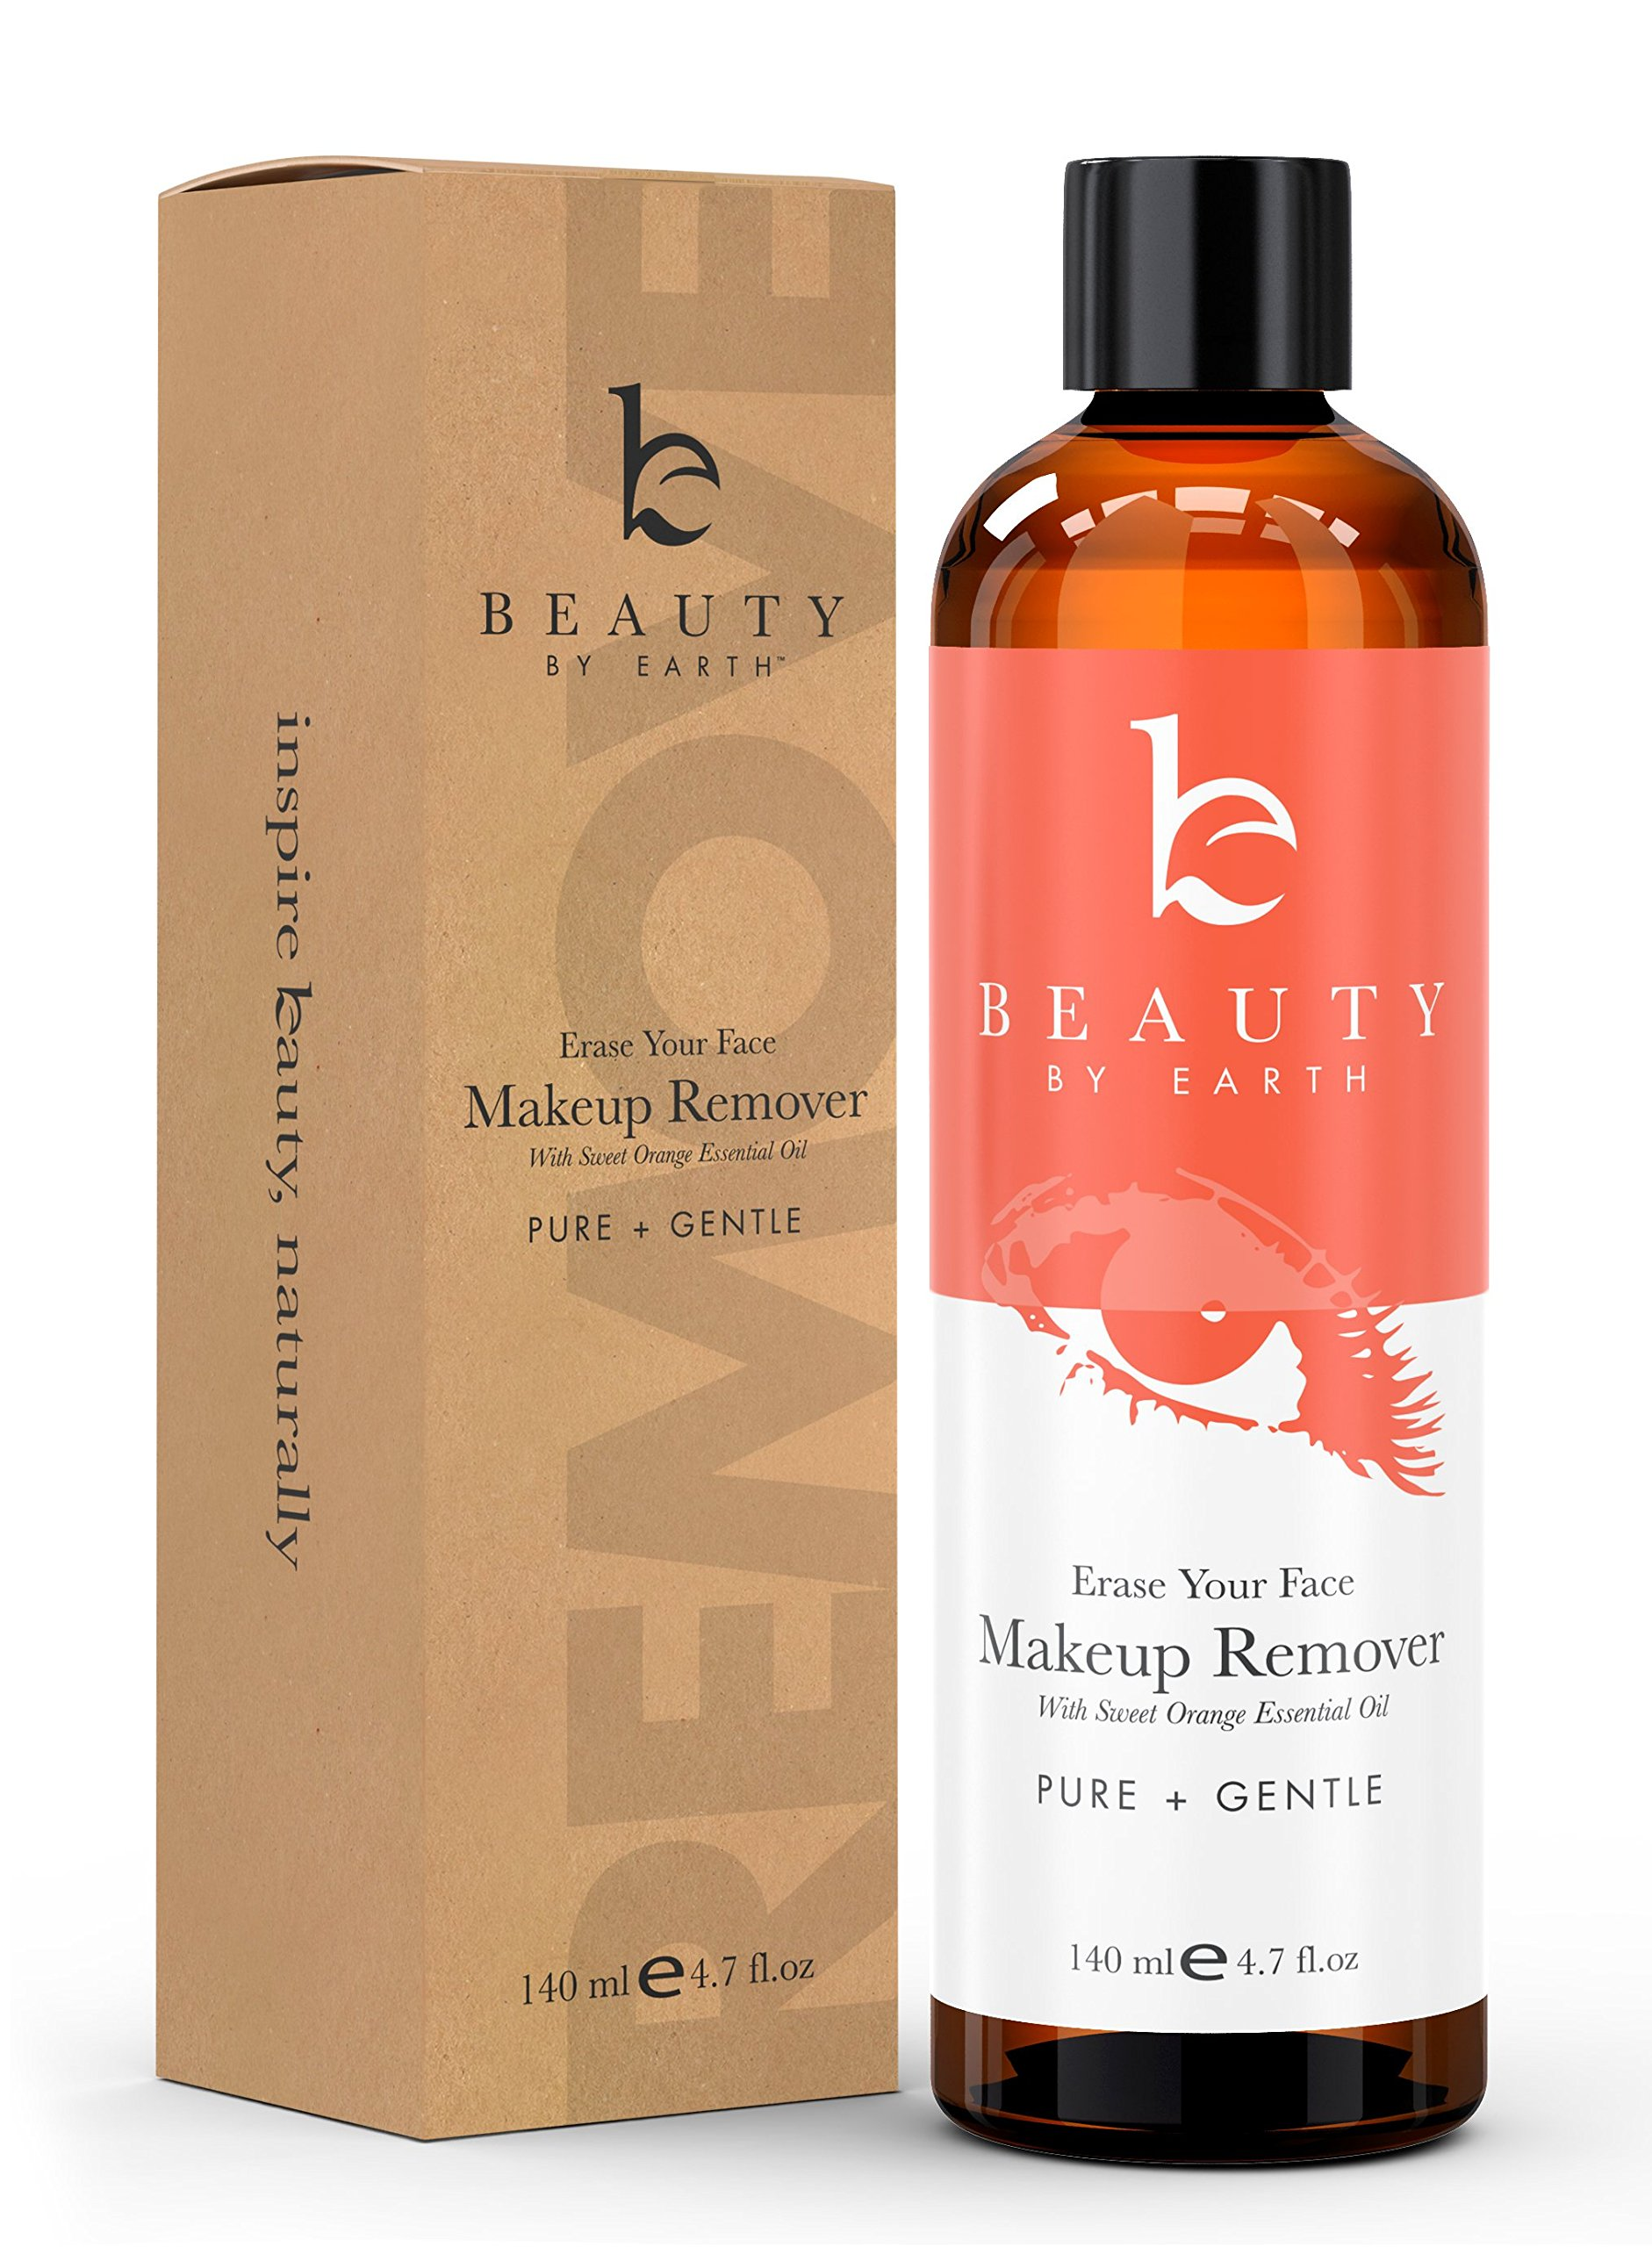 Makeup Remover - Organic & Natural Ingredients, Use with Eye Makeup Remover Wipes or Pads, Oil Free Makeup Remover Leaves Face Cleaner and Deals with Removing Waterproof Makeup, Zero Residue on Skin by Beauty by Earth